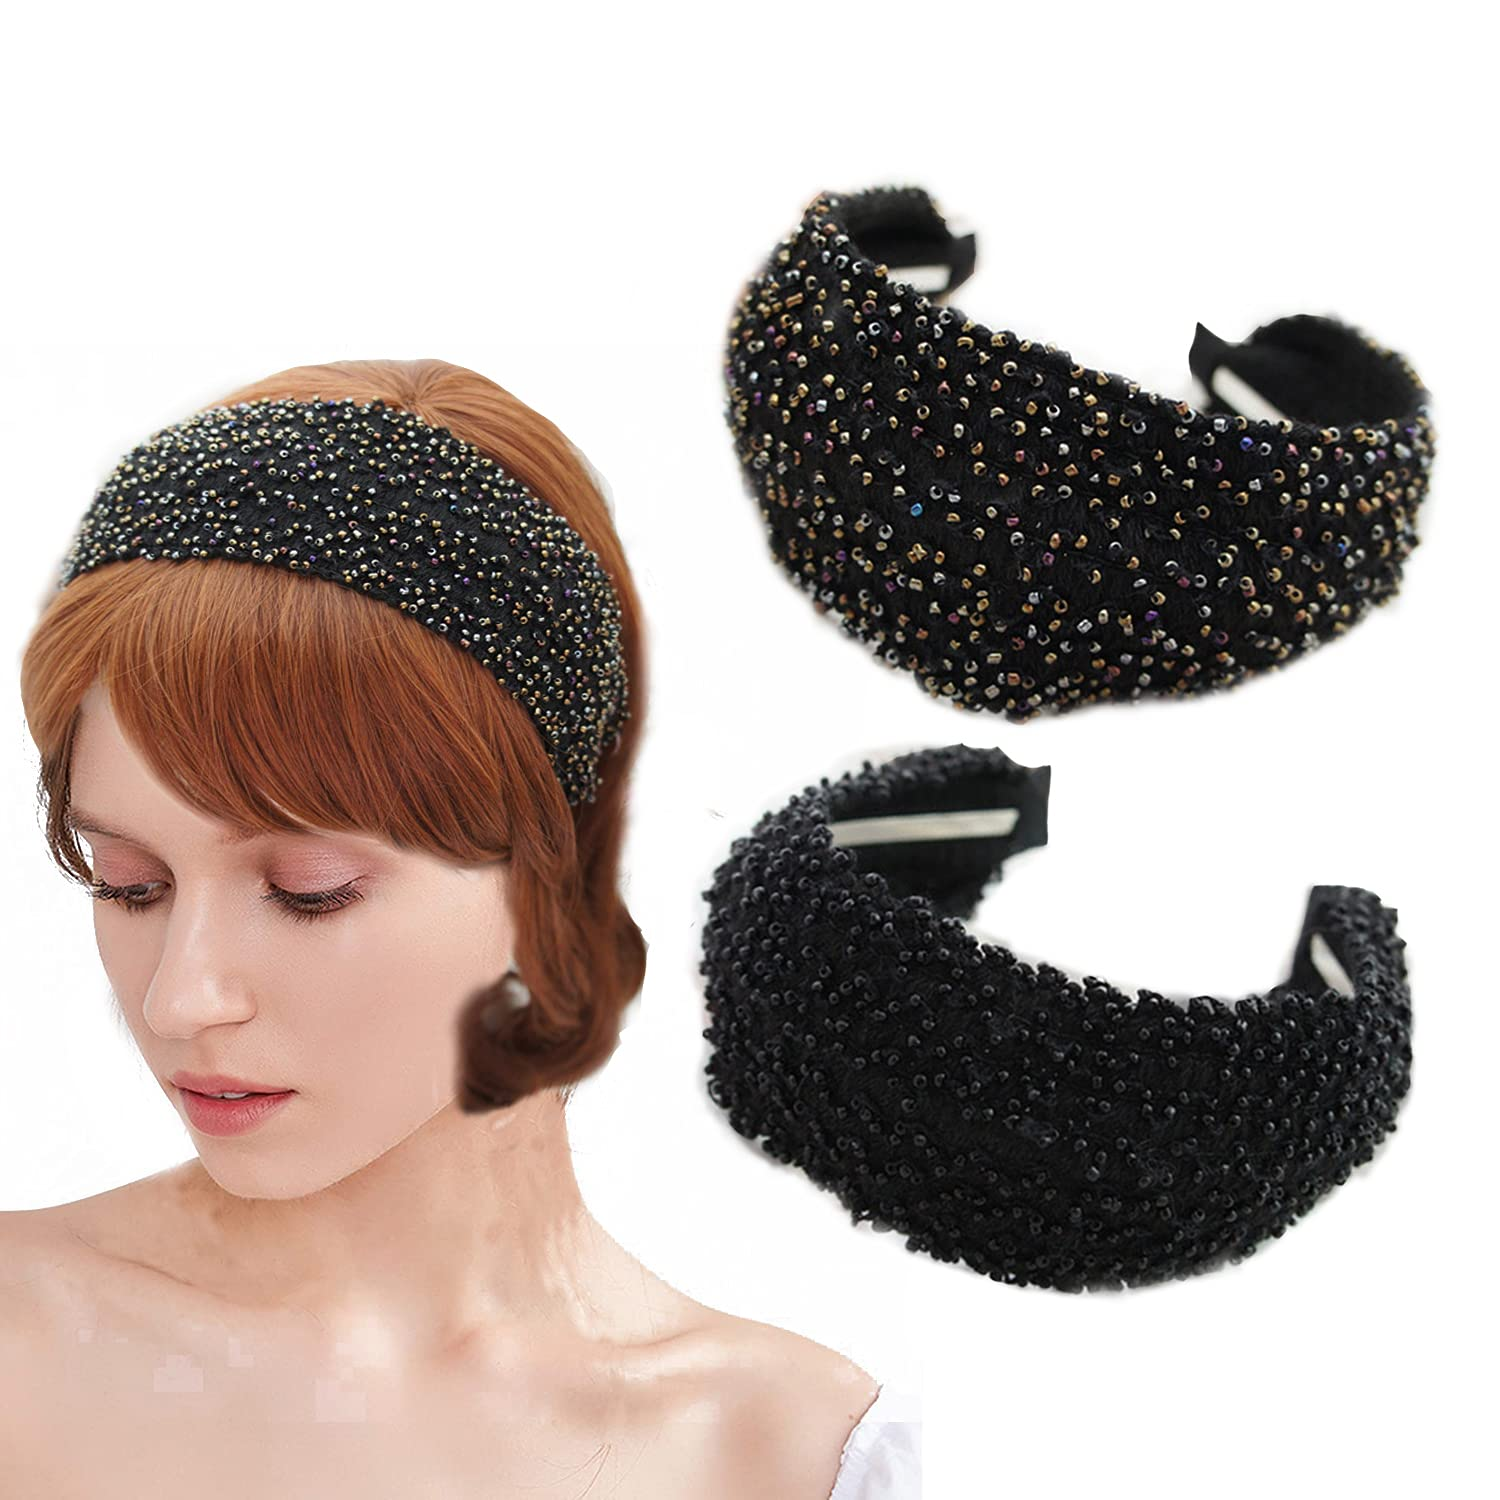 Fashionable Lace Flowers For Ladies/'s Hair Band Headband Headwear Accessories